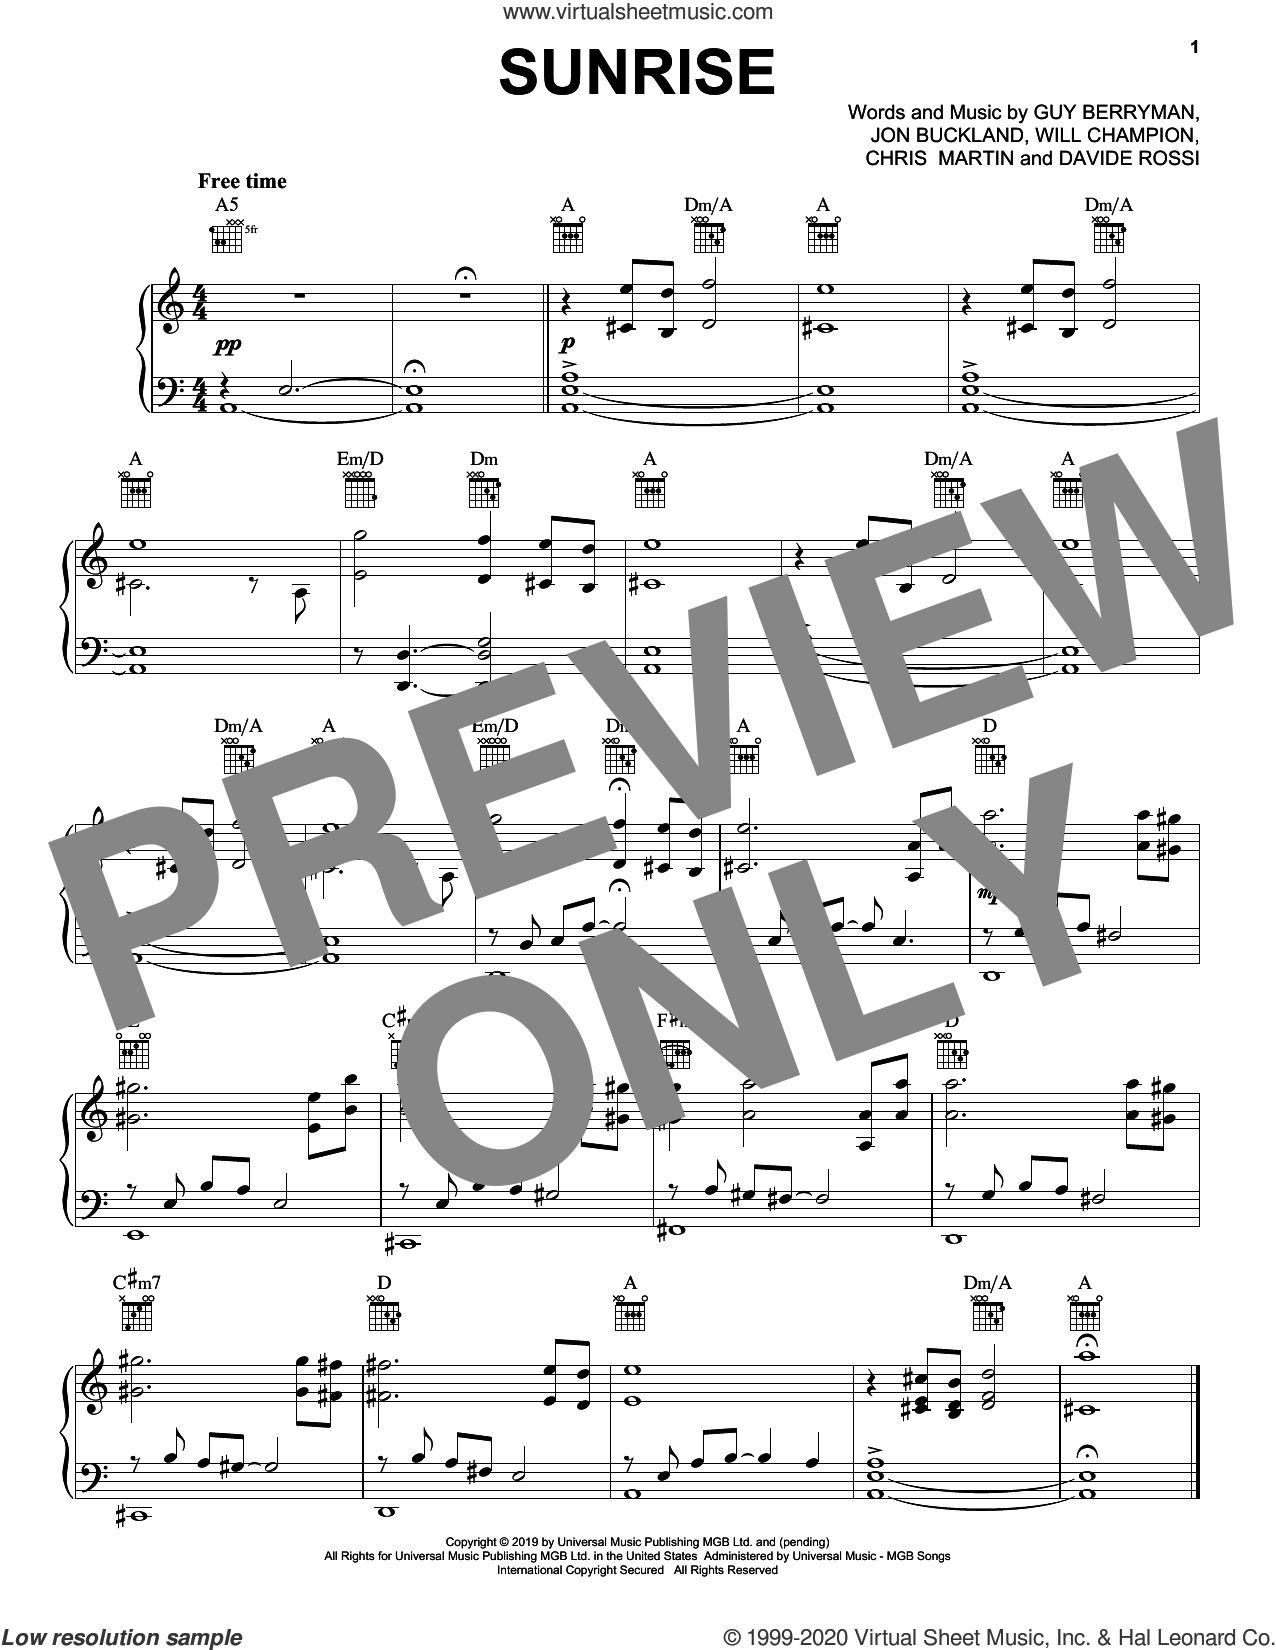 Sunrise sheet music for voice, piano or guitar by Coldplay, Chris Martin, Davide Rossi, Guy Berryman, Jon Buckland and Will Champion, intermediate skill level